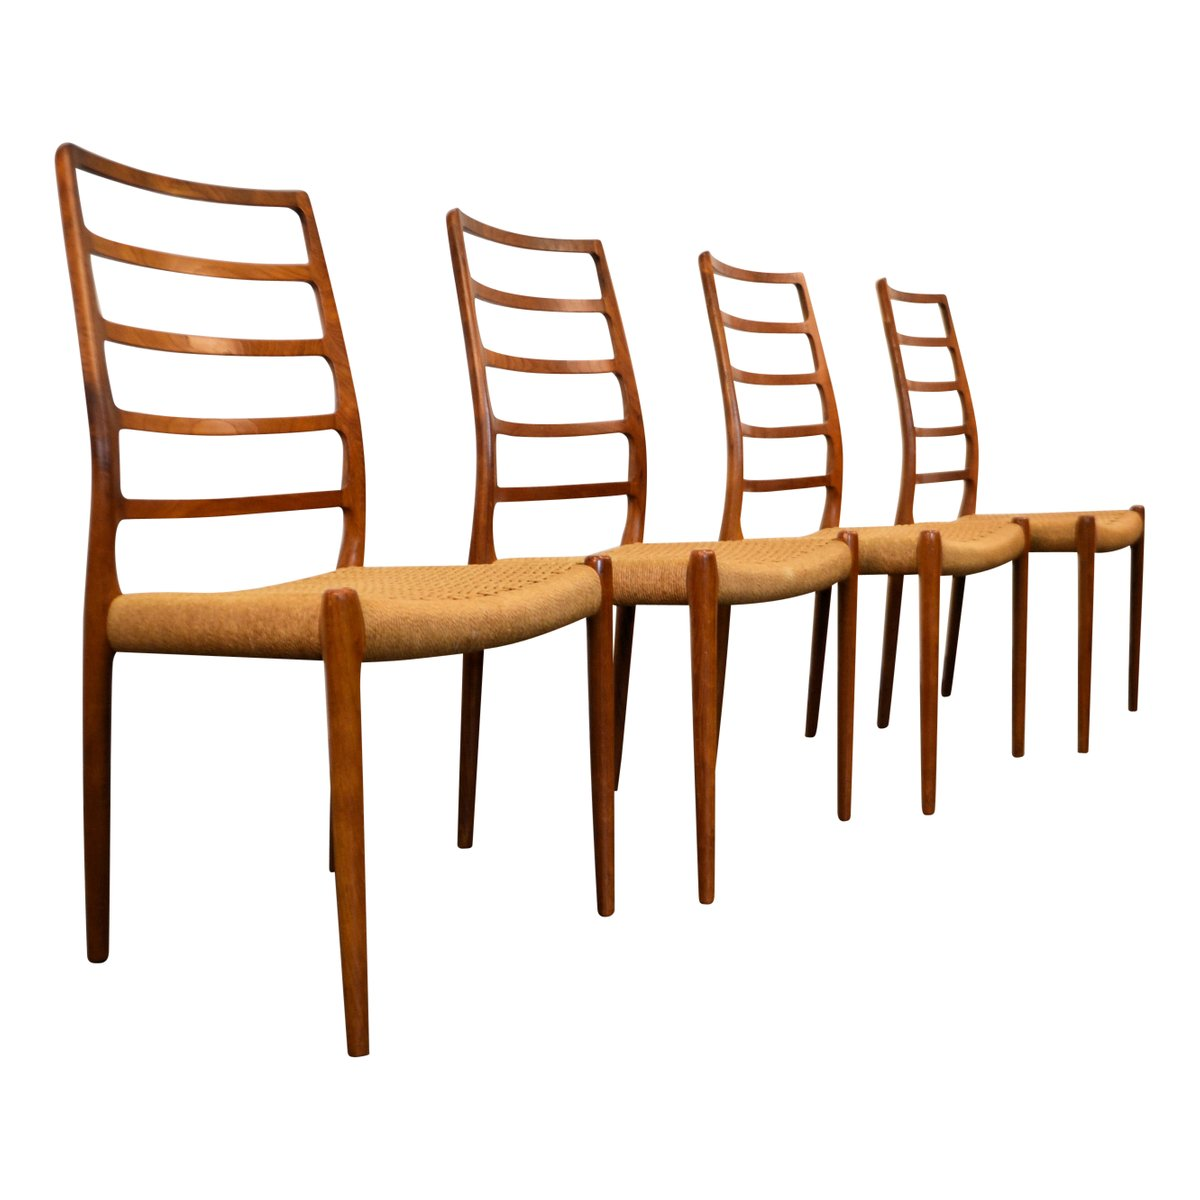 Vintage Model 82 Teak Dining Chairs By Niels O Moller For JL Mollers Set Of 4 Sale At Pamono